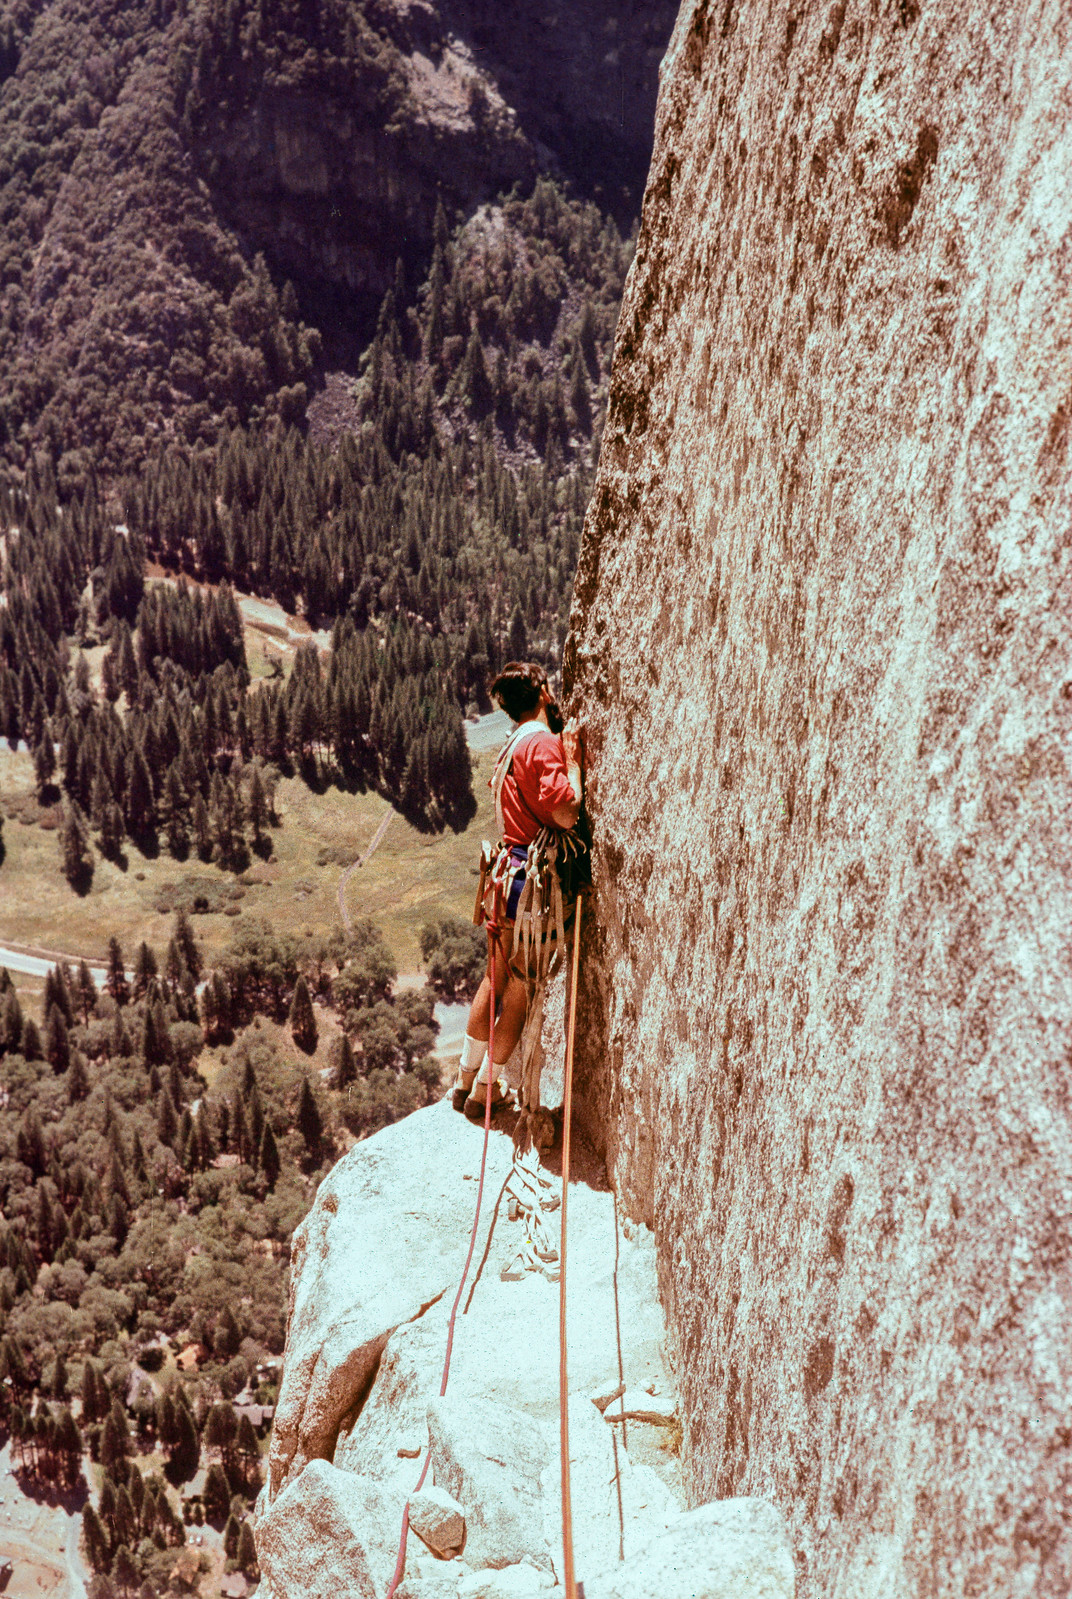 Richard (me) starting pitch 3, Lost Arrow Spire